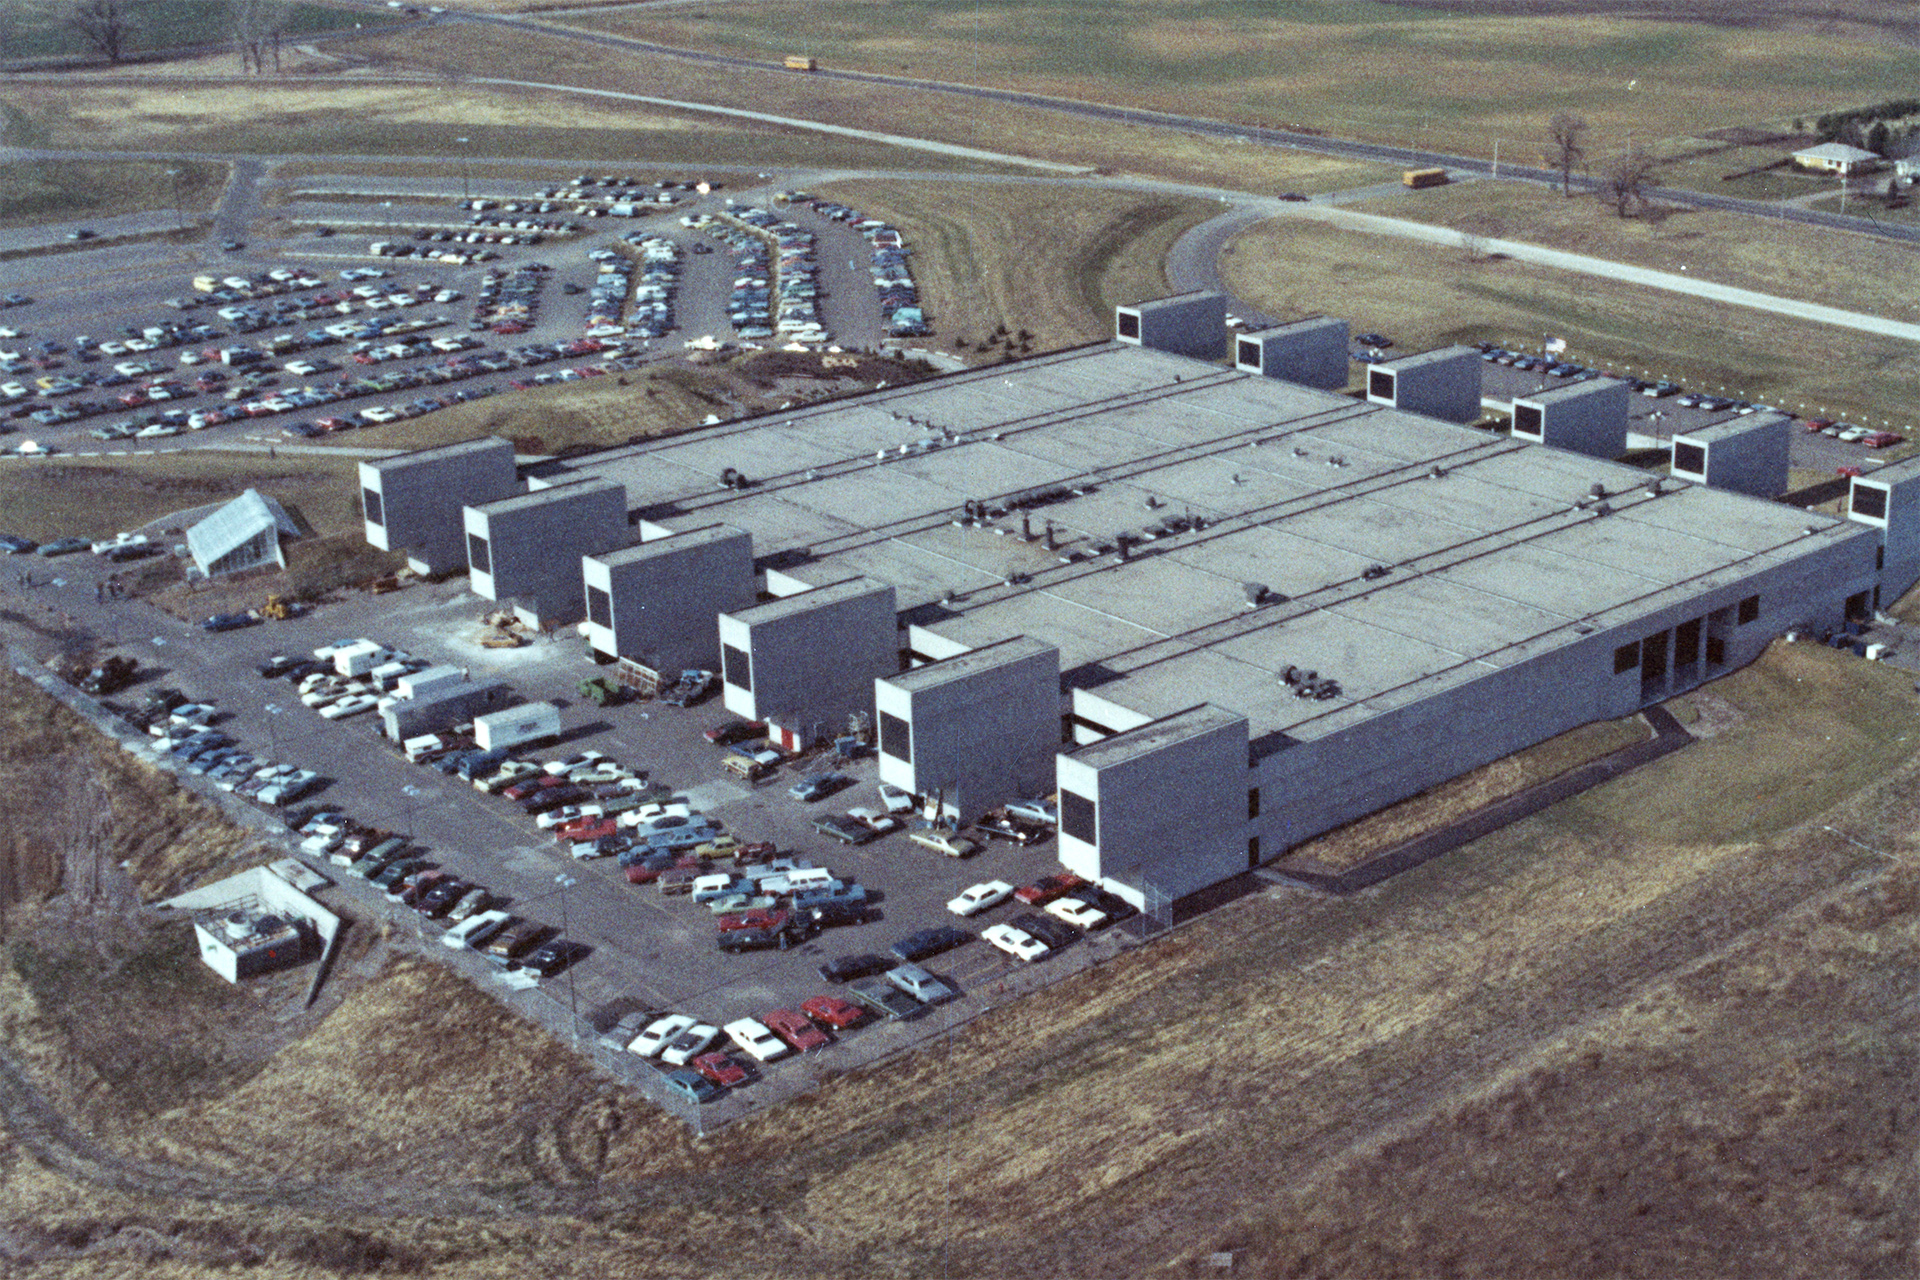 DCTC Aerial Campus View